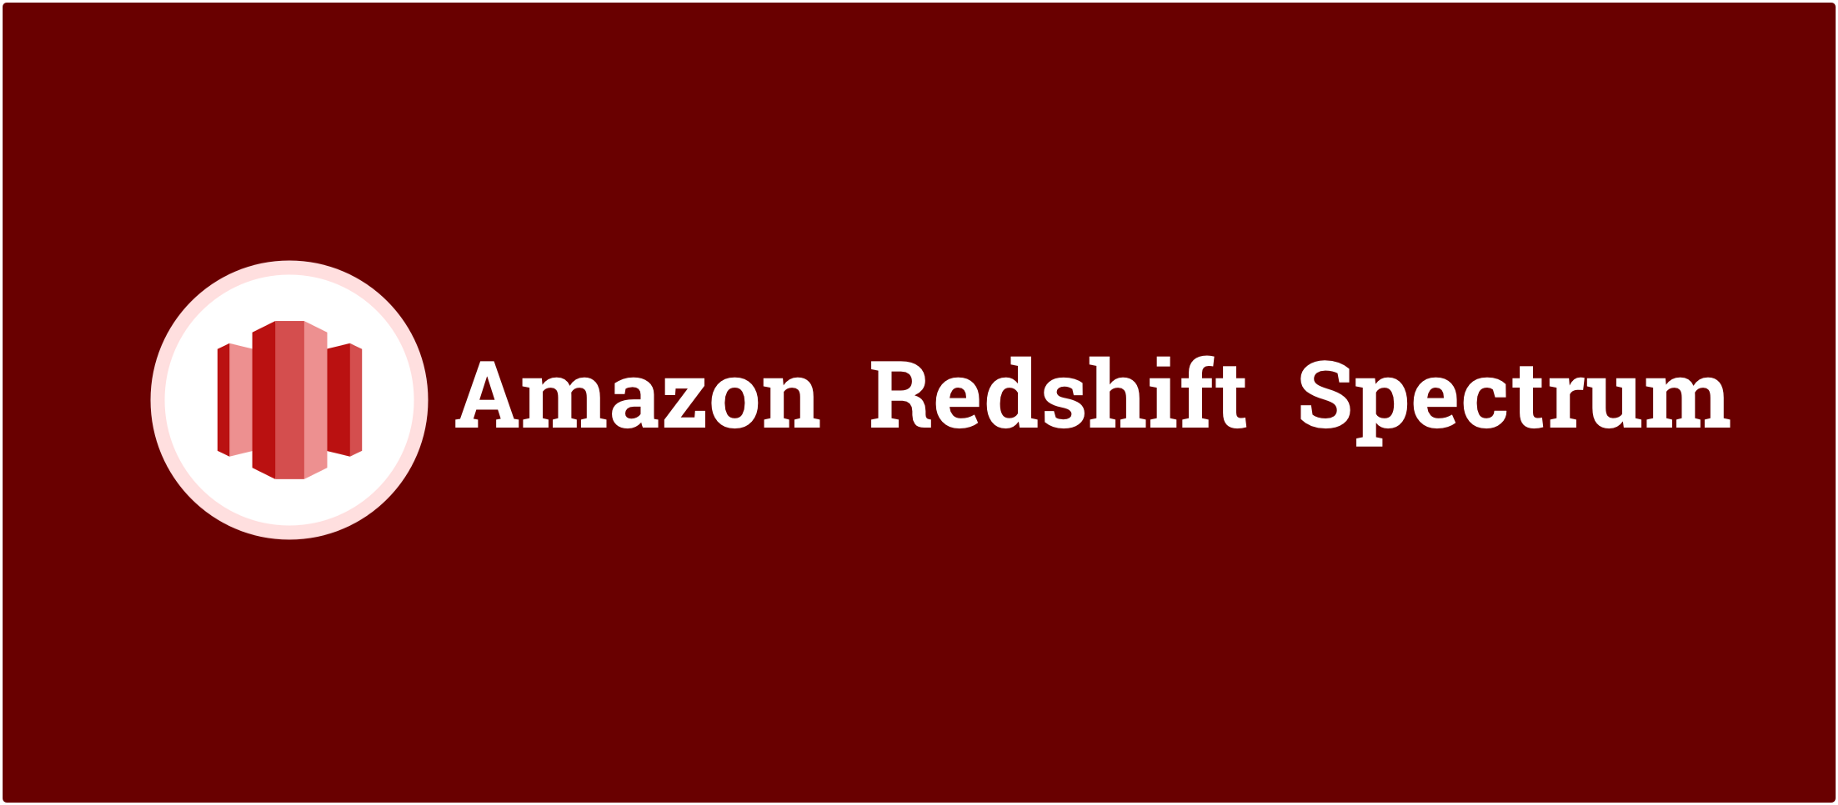 Amazon Redshift Spectrum: 10 Simple Tips That Help You Quickly Find